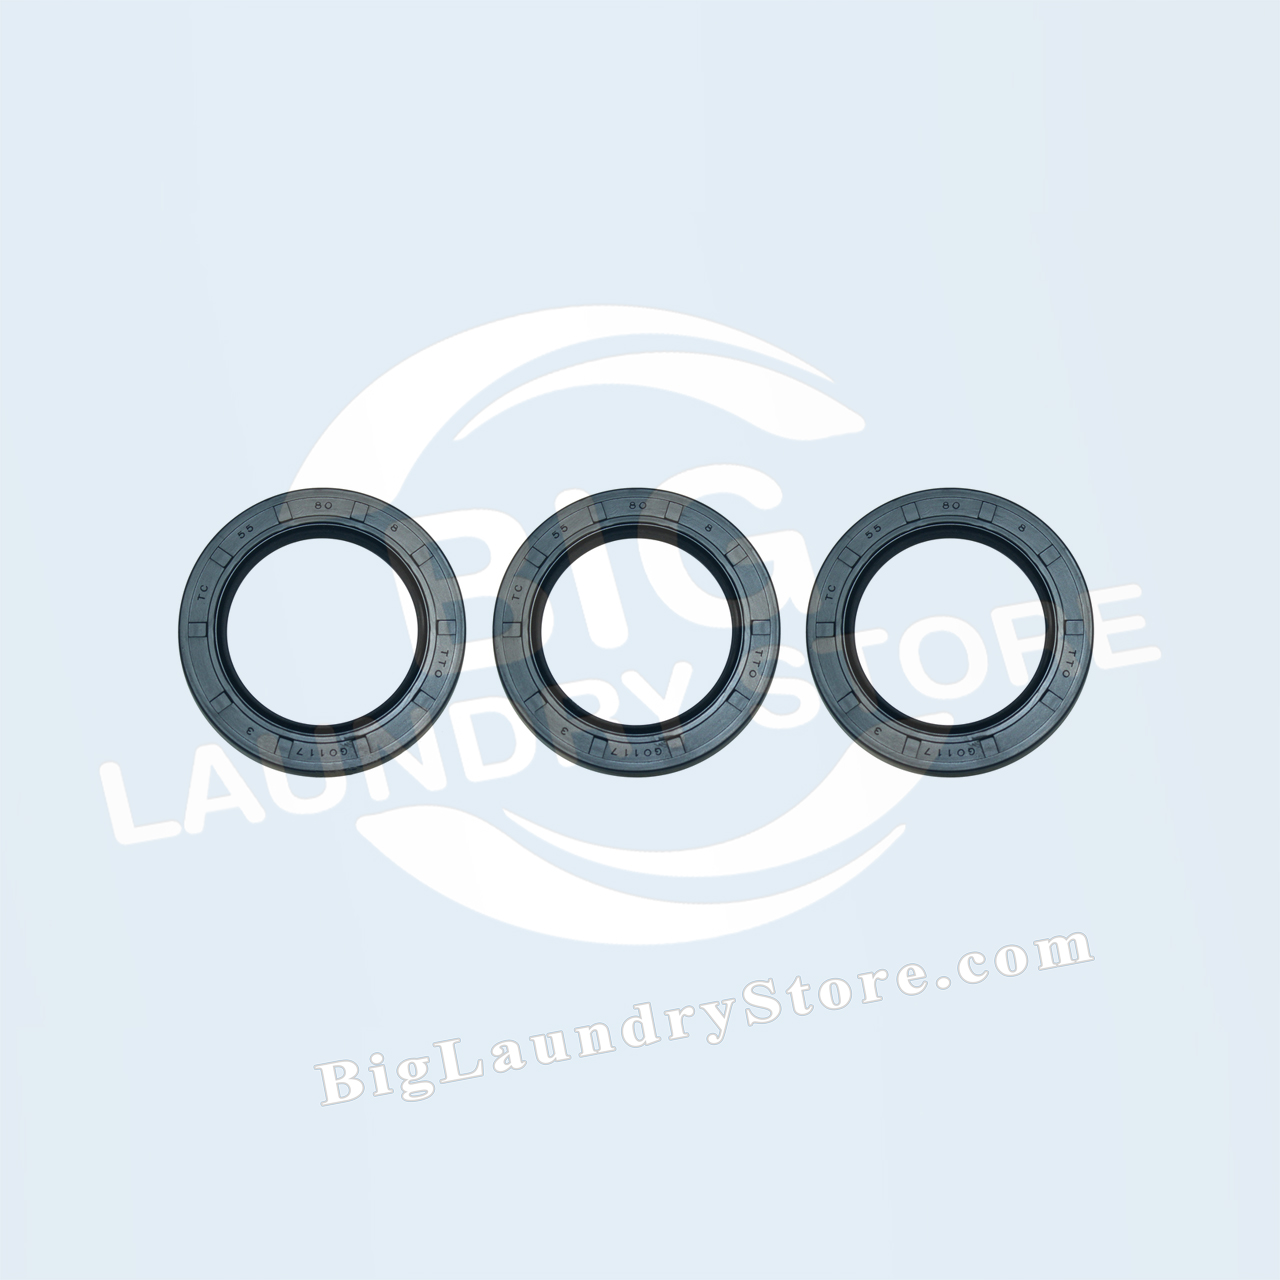 Three (3) 55-80-8 Seals for Wascomat W75 (Late) - Wascomat # 990235S